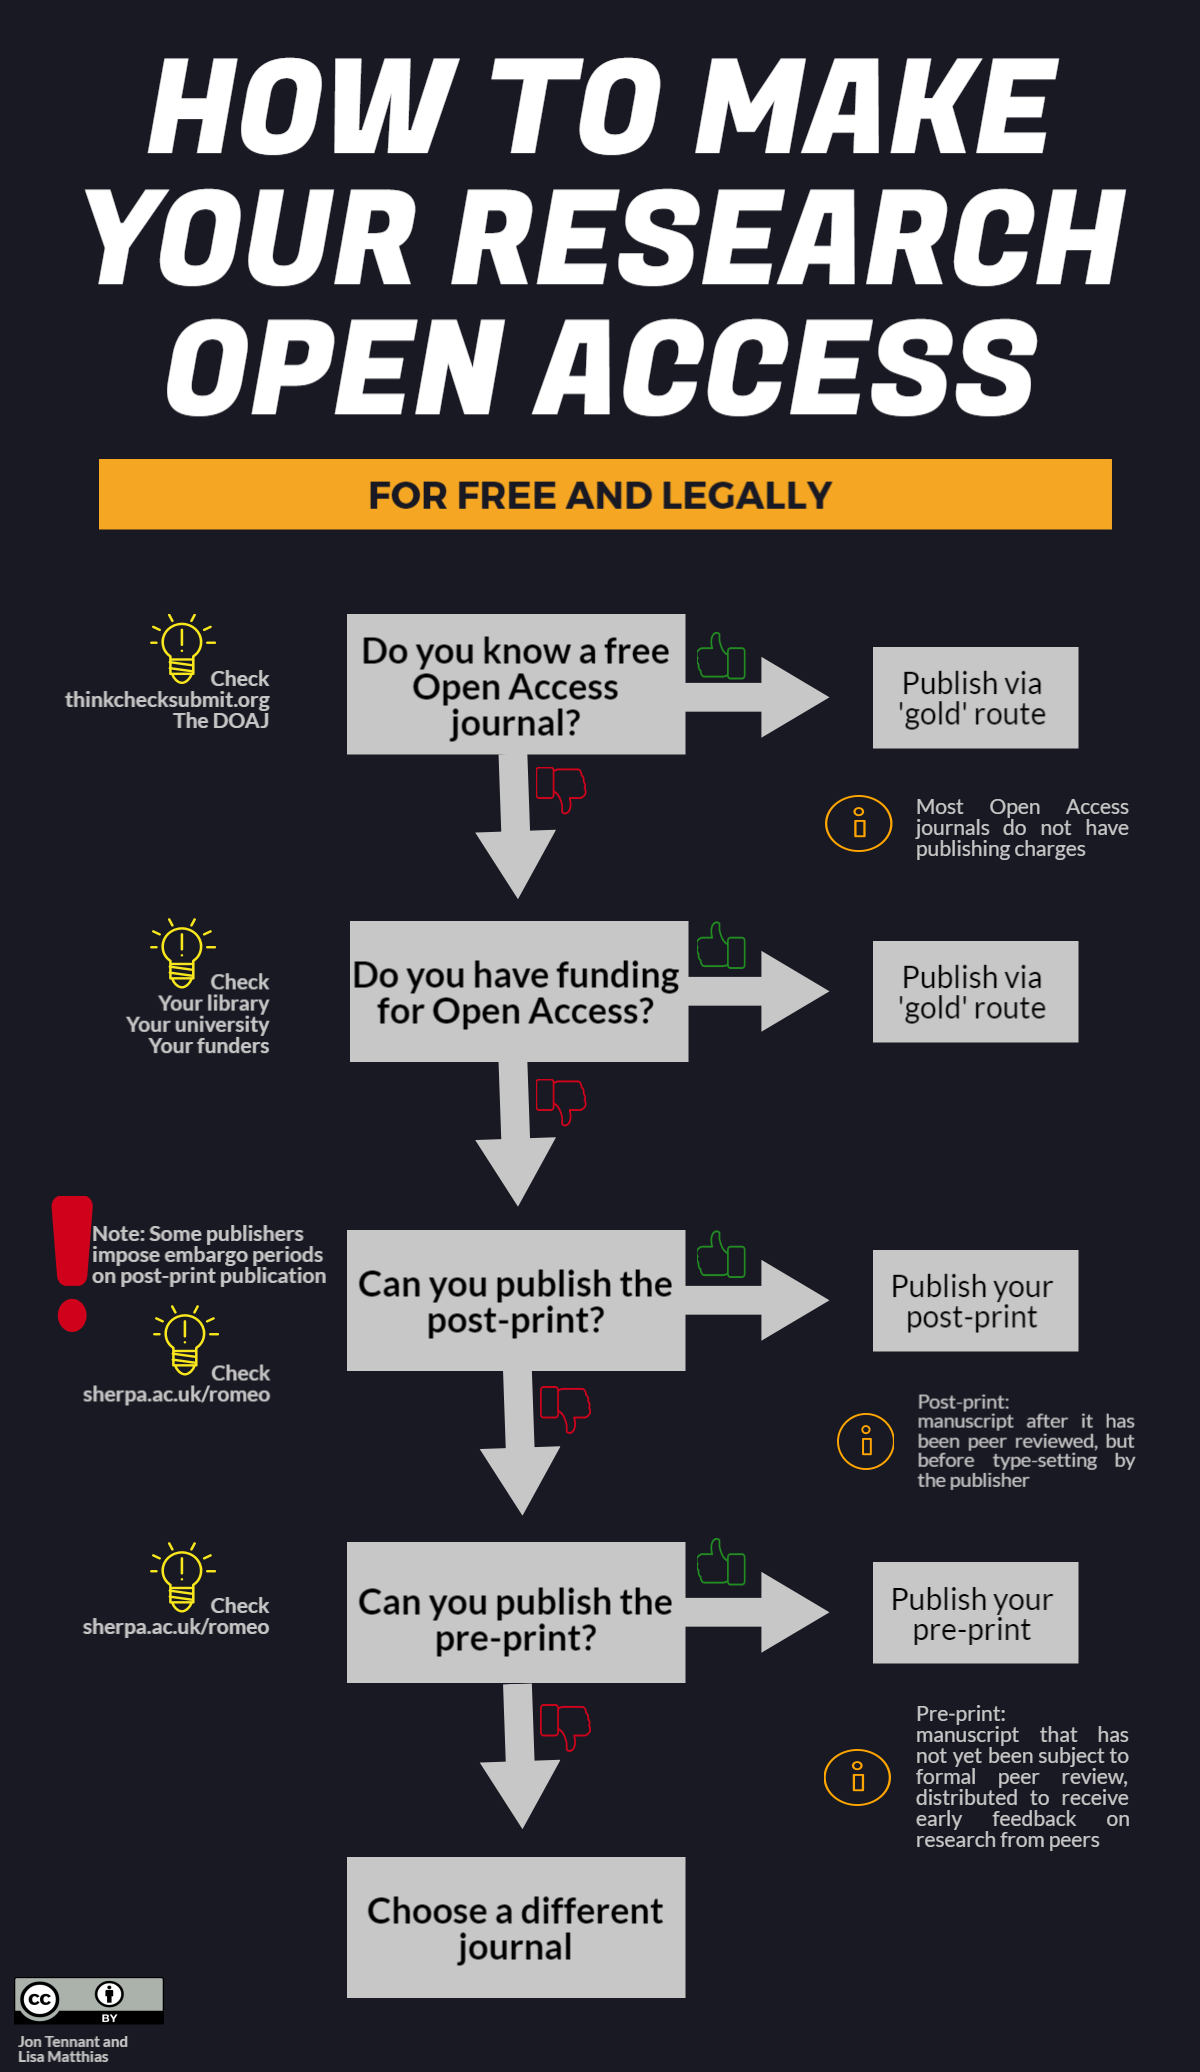 How to make your research open access